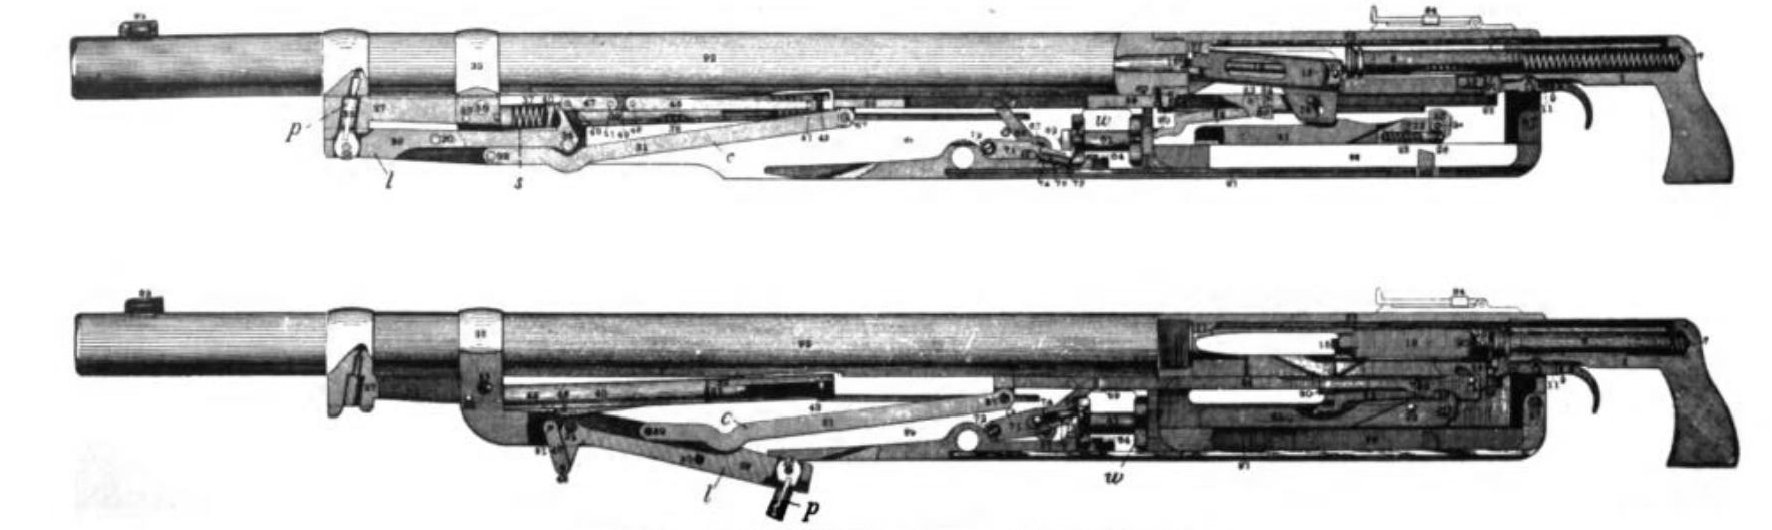 Lever Action Military Wiki Fandom Powered By Wikia Marlin 22 Parts Diagram On